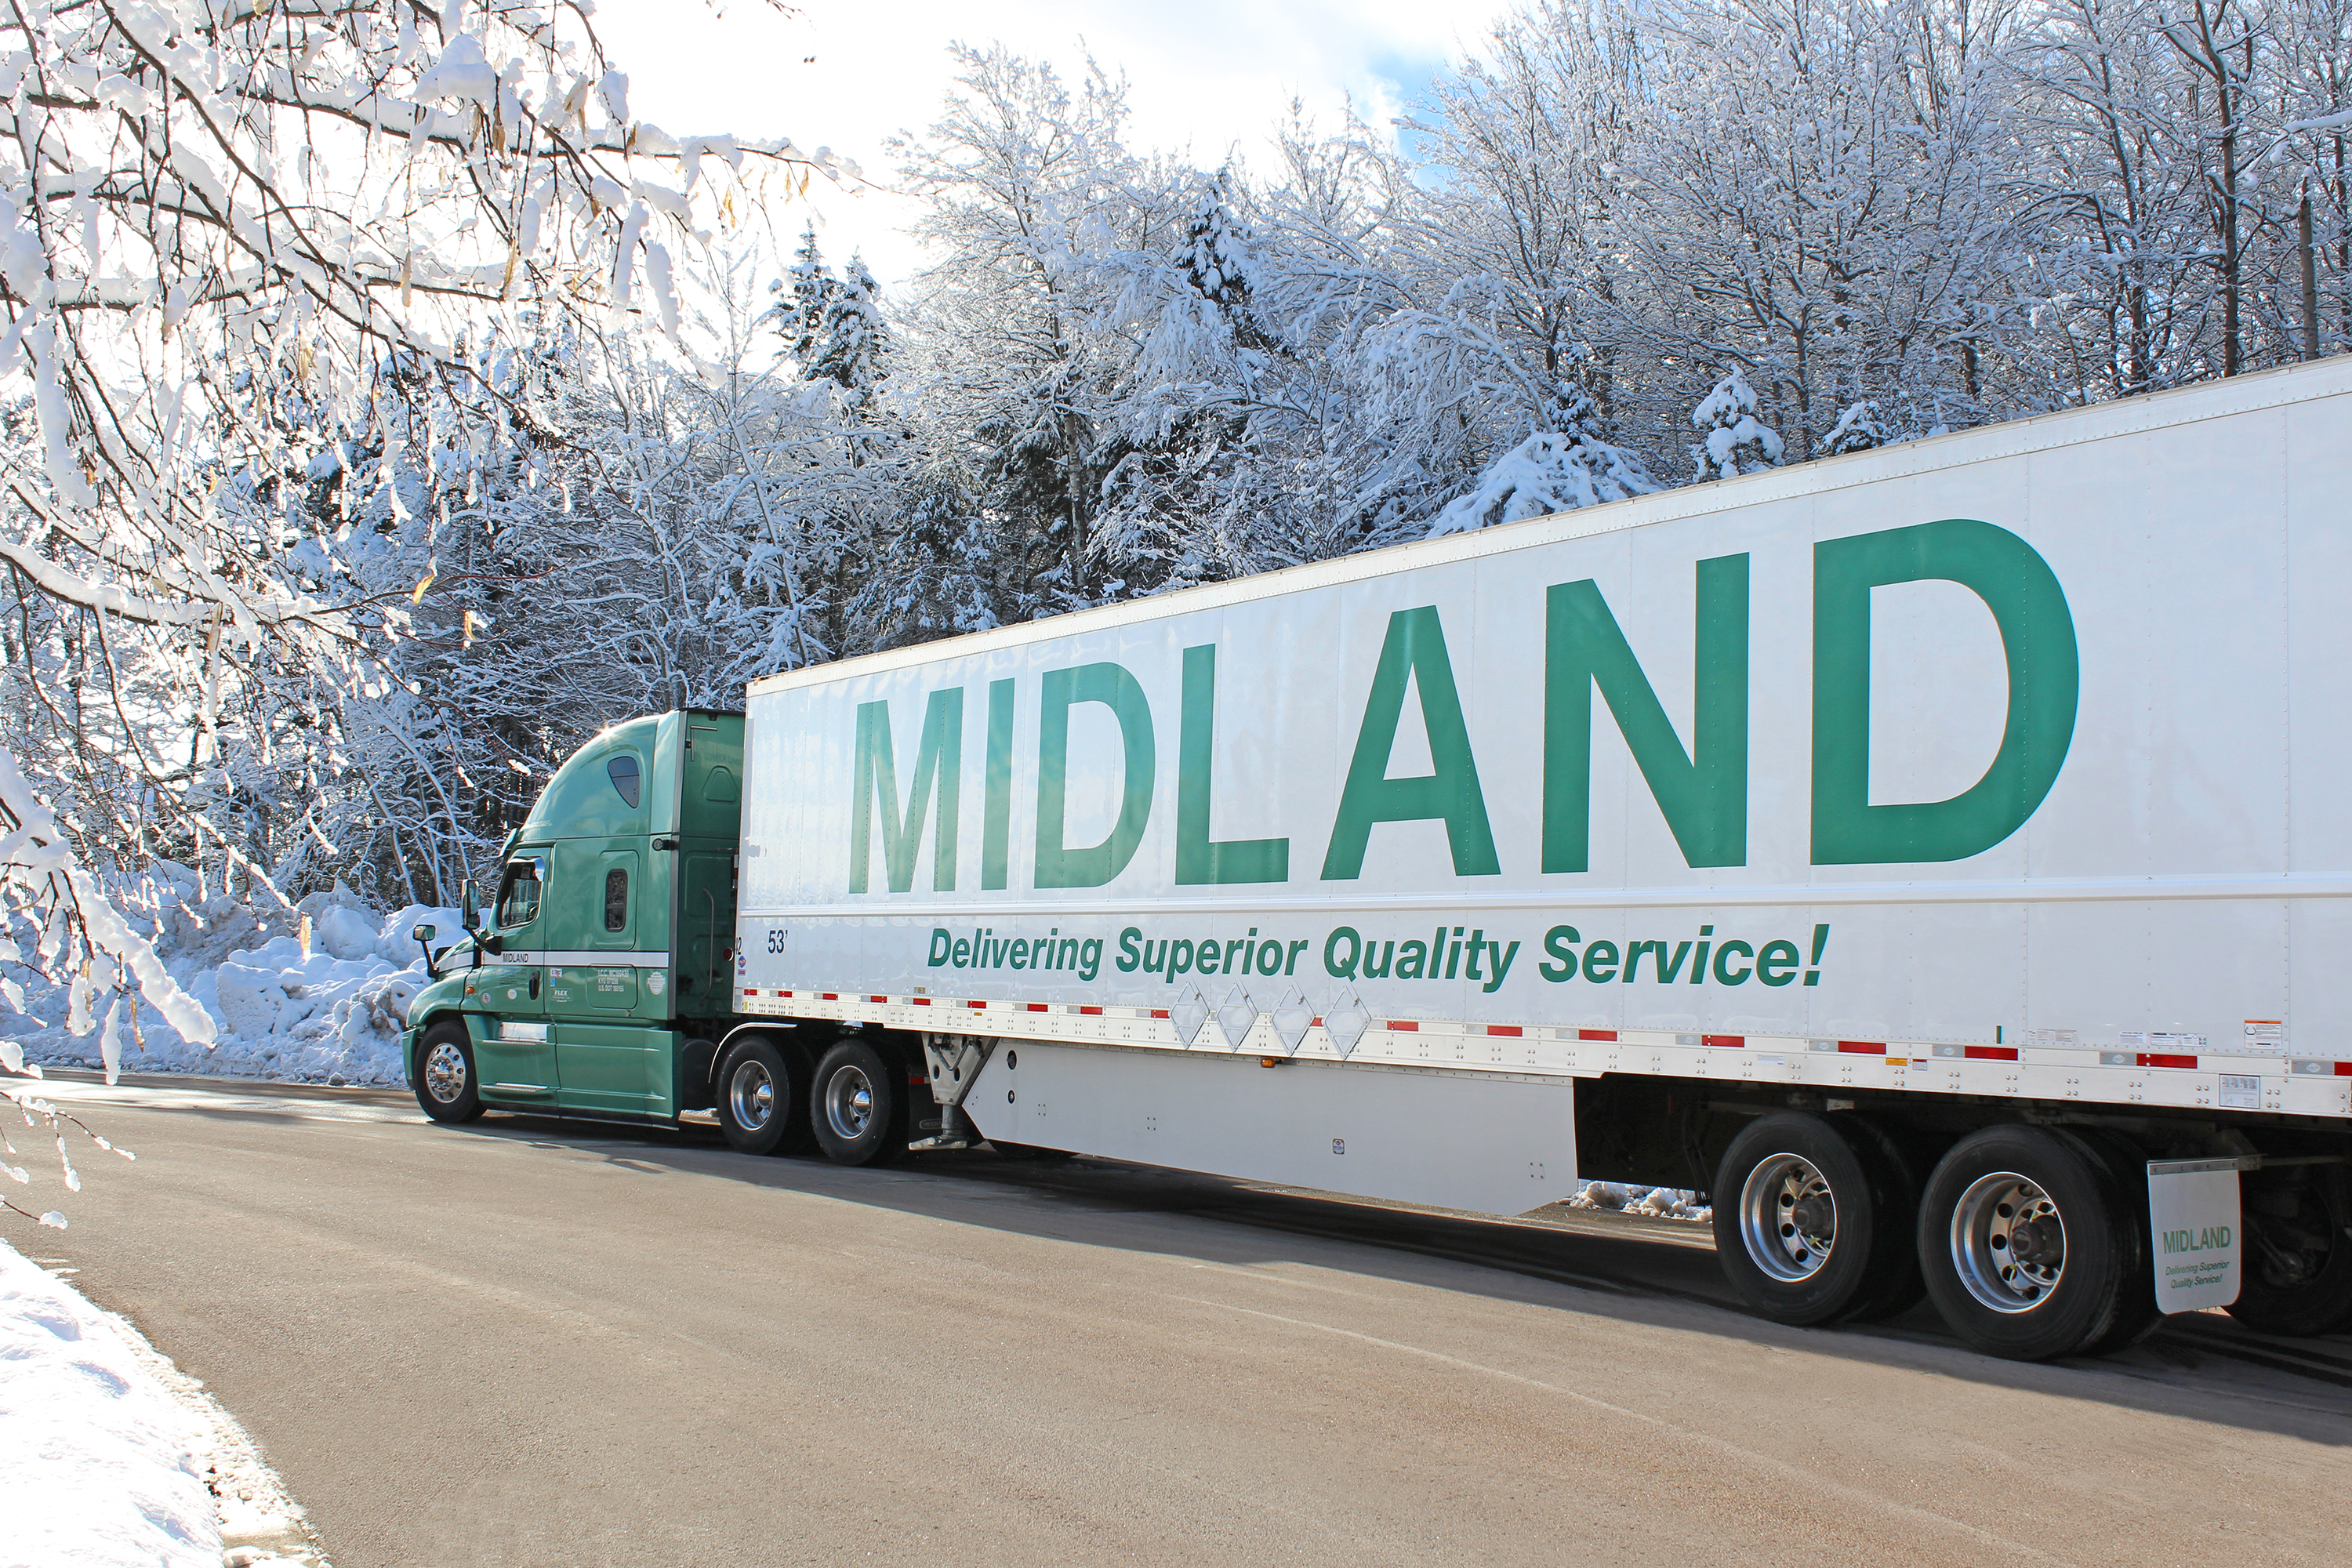 Winter Midland Truck